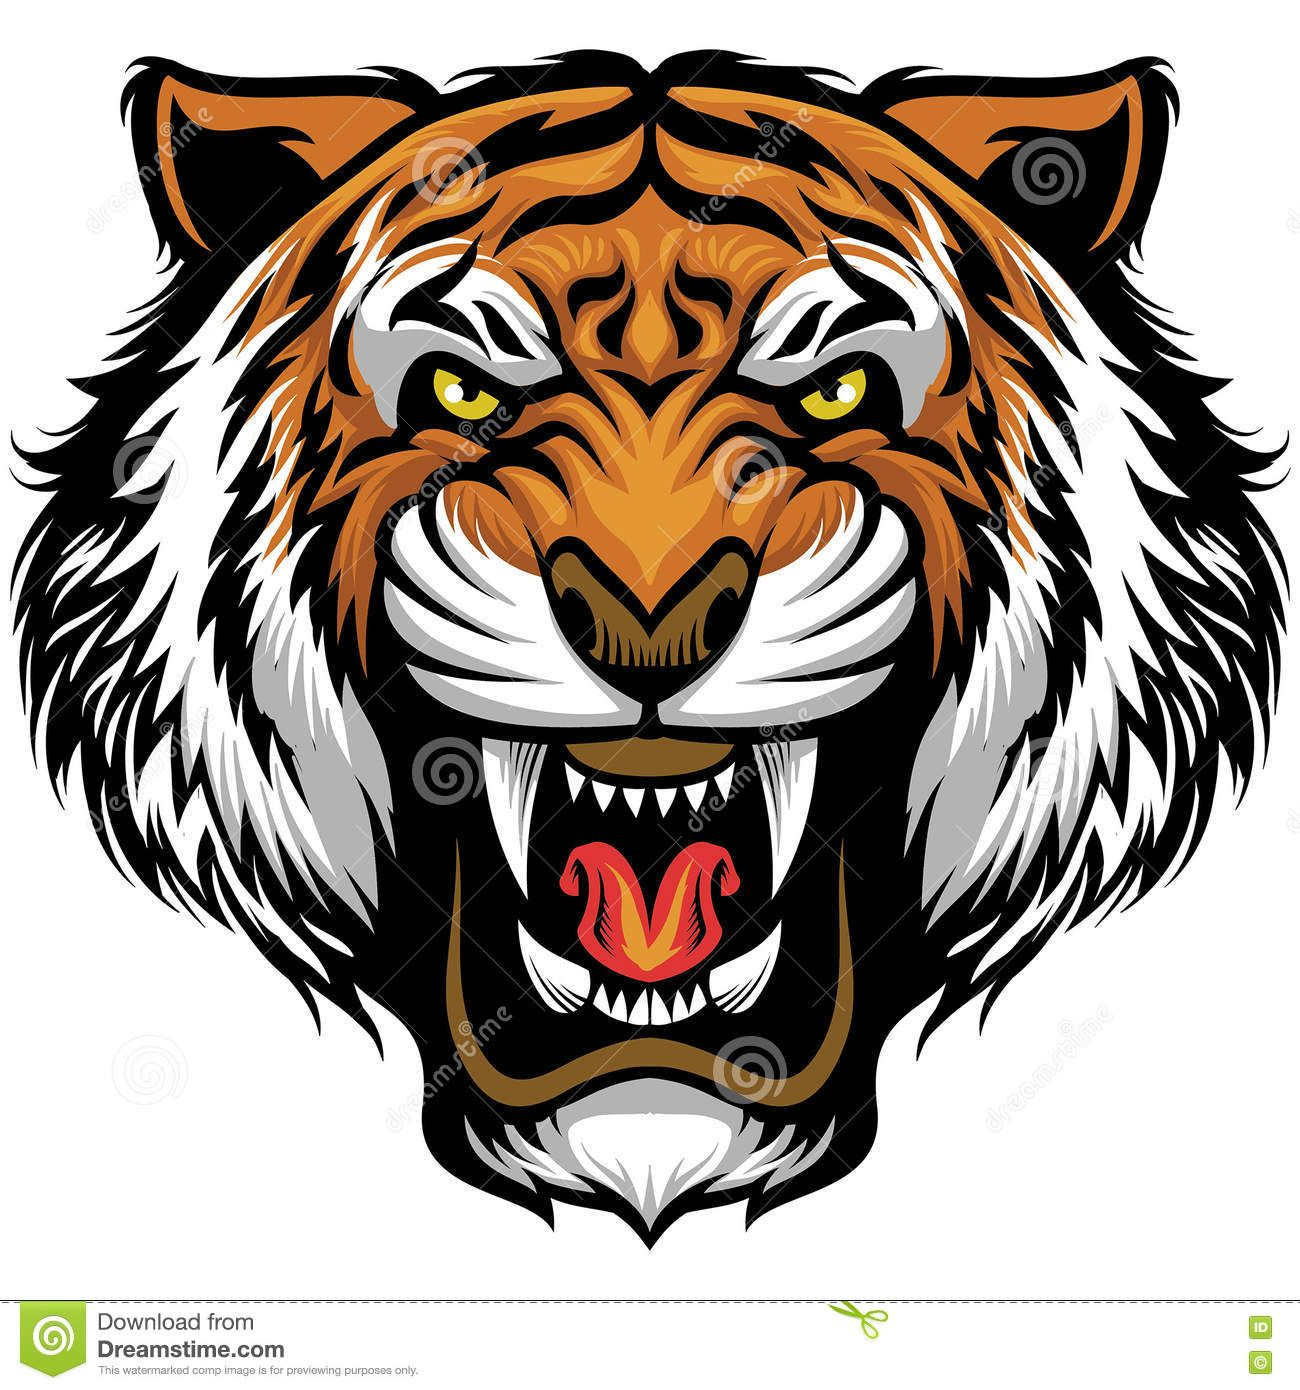 Angry Tiger Face Stock Vector Illustration Of Cartoon 70770388 Tiger Face Drawing Tiger Face Angry Tiger